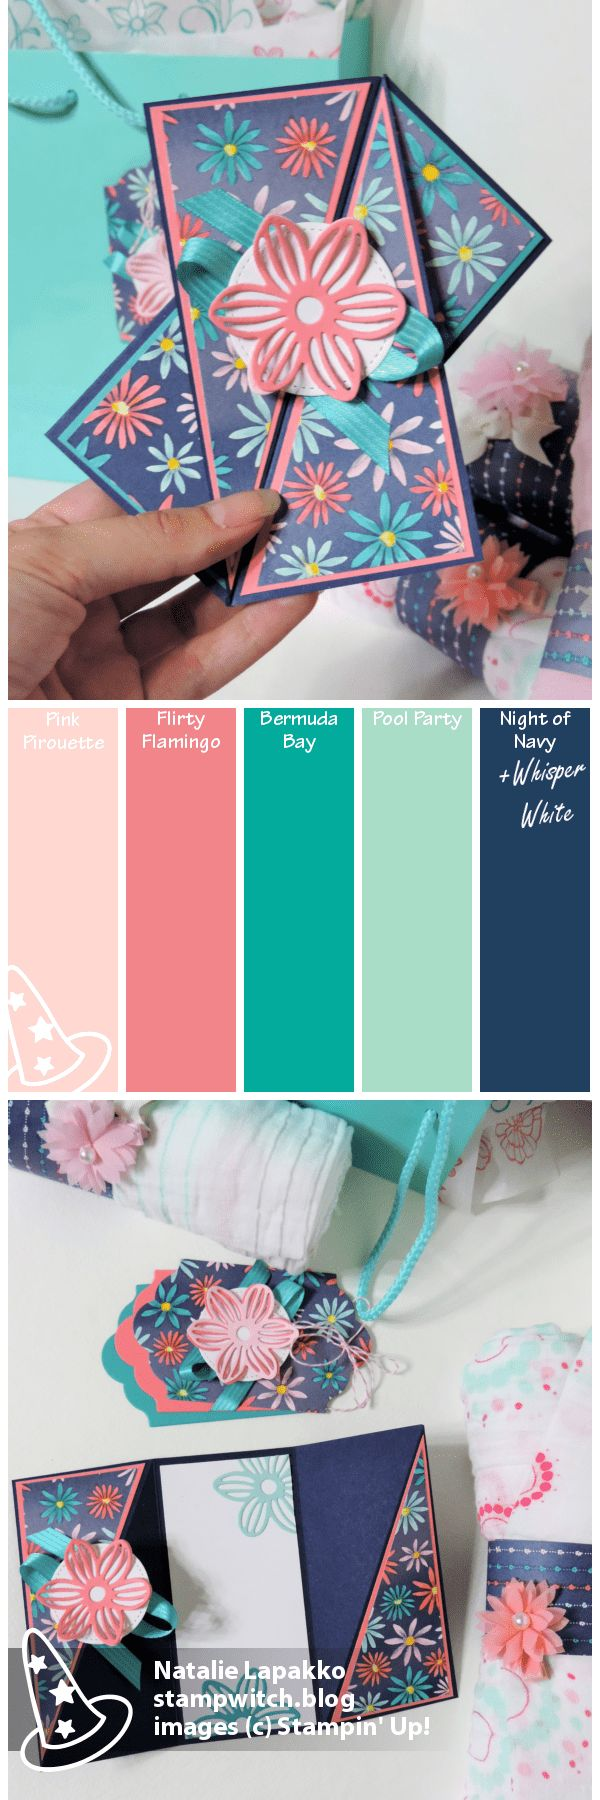 Homemade card and baby gift by Natalie Lapakko featuring Delightful Daisy DSP and May Flowers Framelits from Stampin' Up! Color inspiration: Pink Pirouette, Flirty Flamingo, Bermuda Bay, Pool Party, Night of Navy